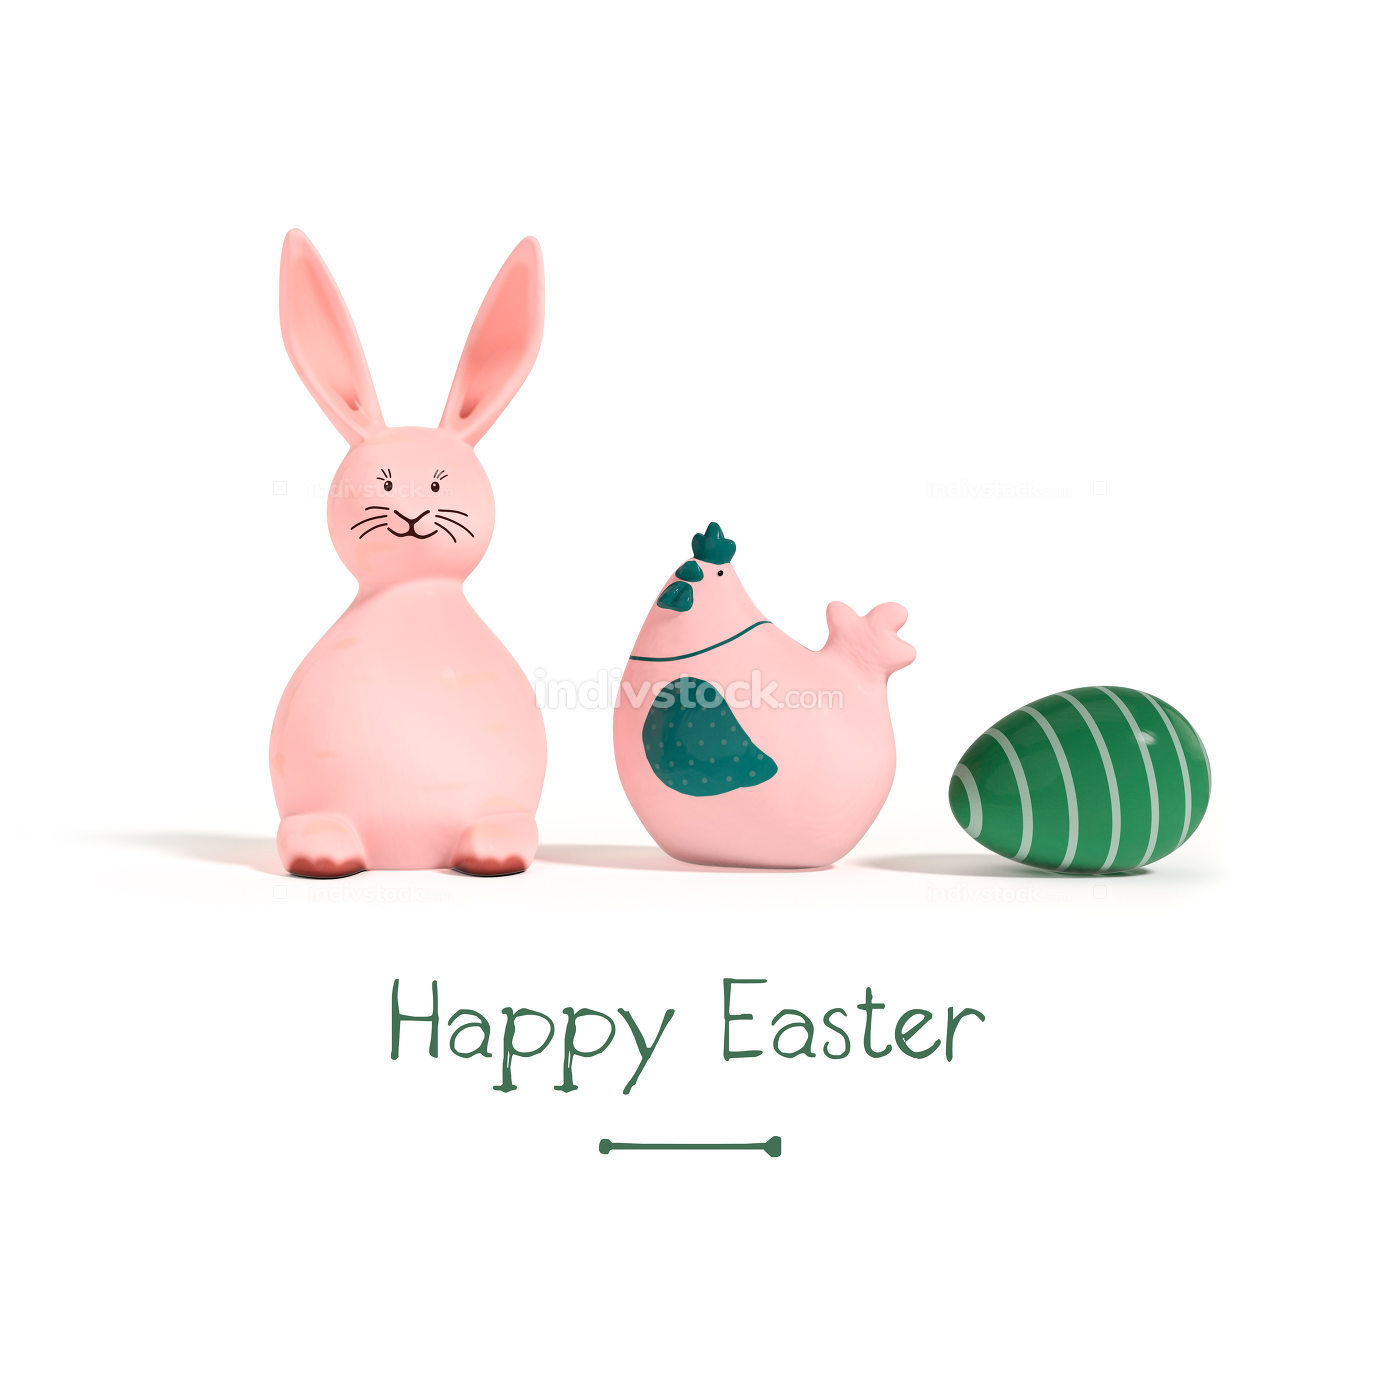 rabbit chicken and egg easter decoration 3d illustration